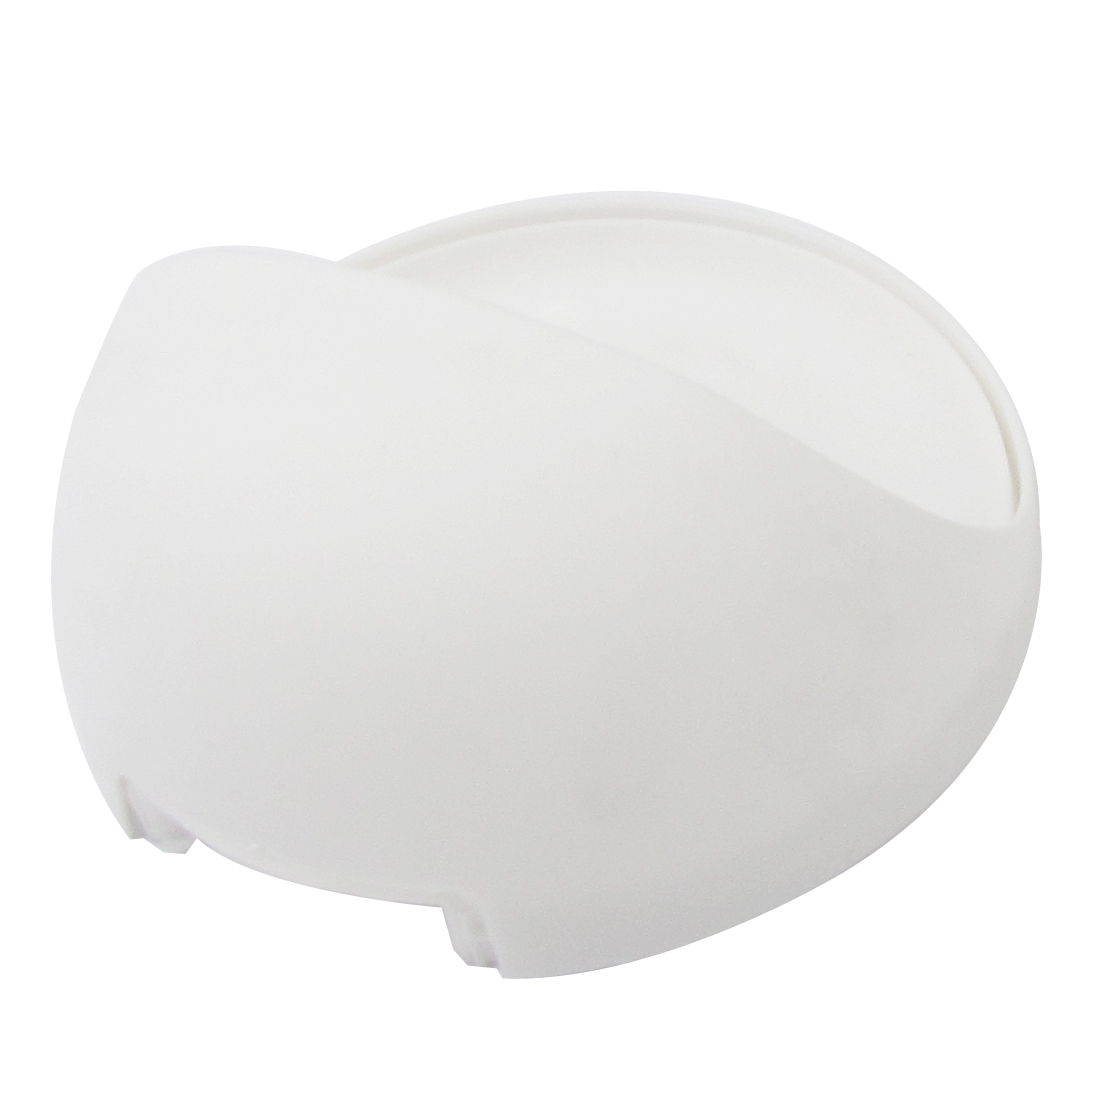 Bathroom Round Design White Plastic Soap Holder Case Box Container